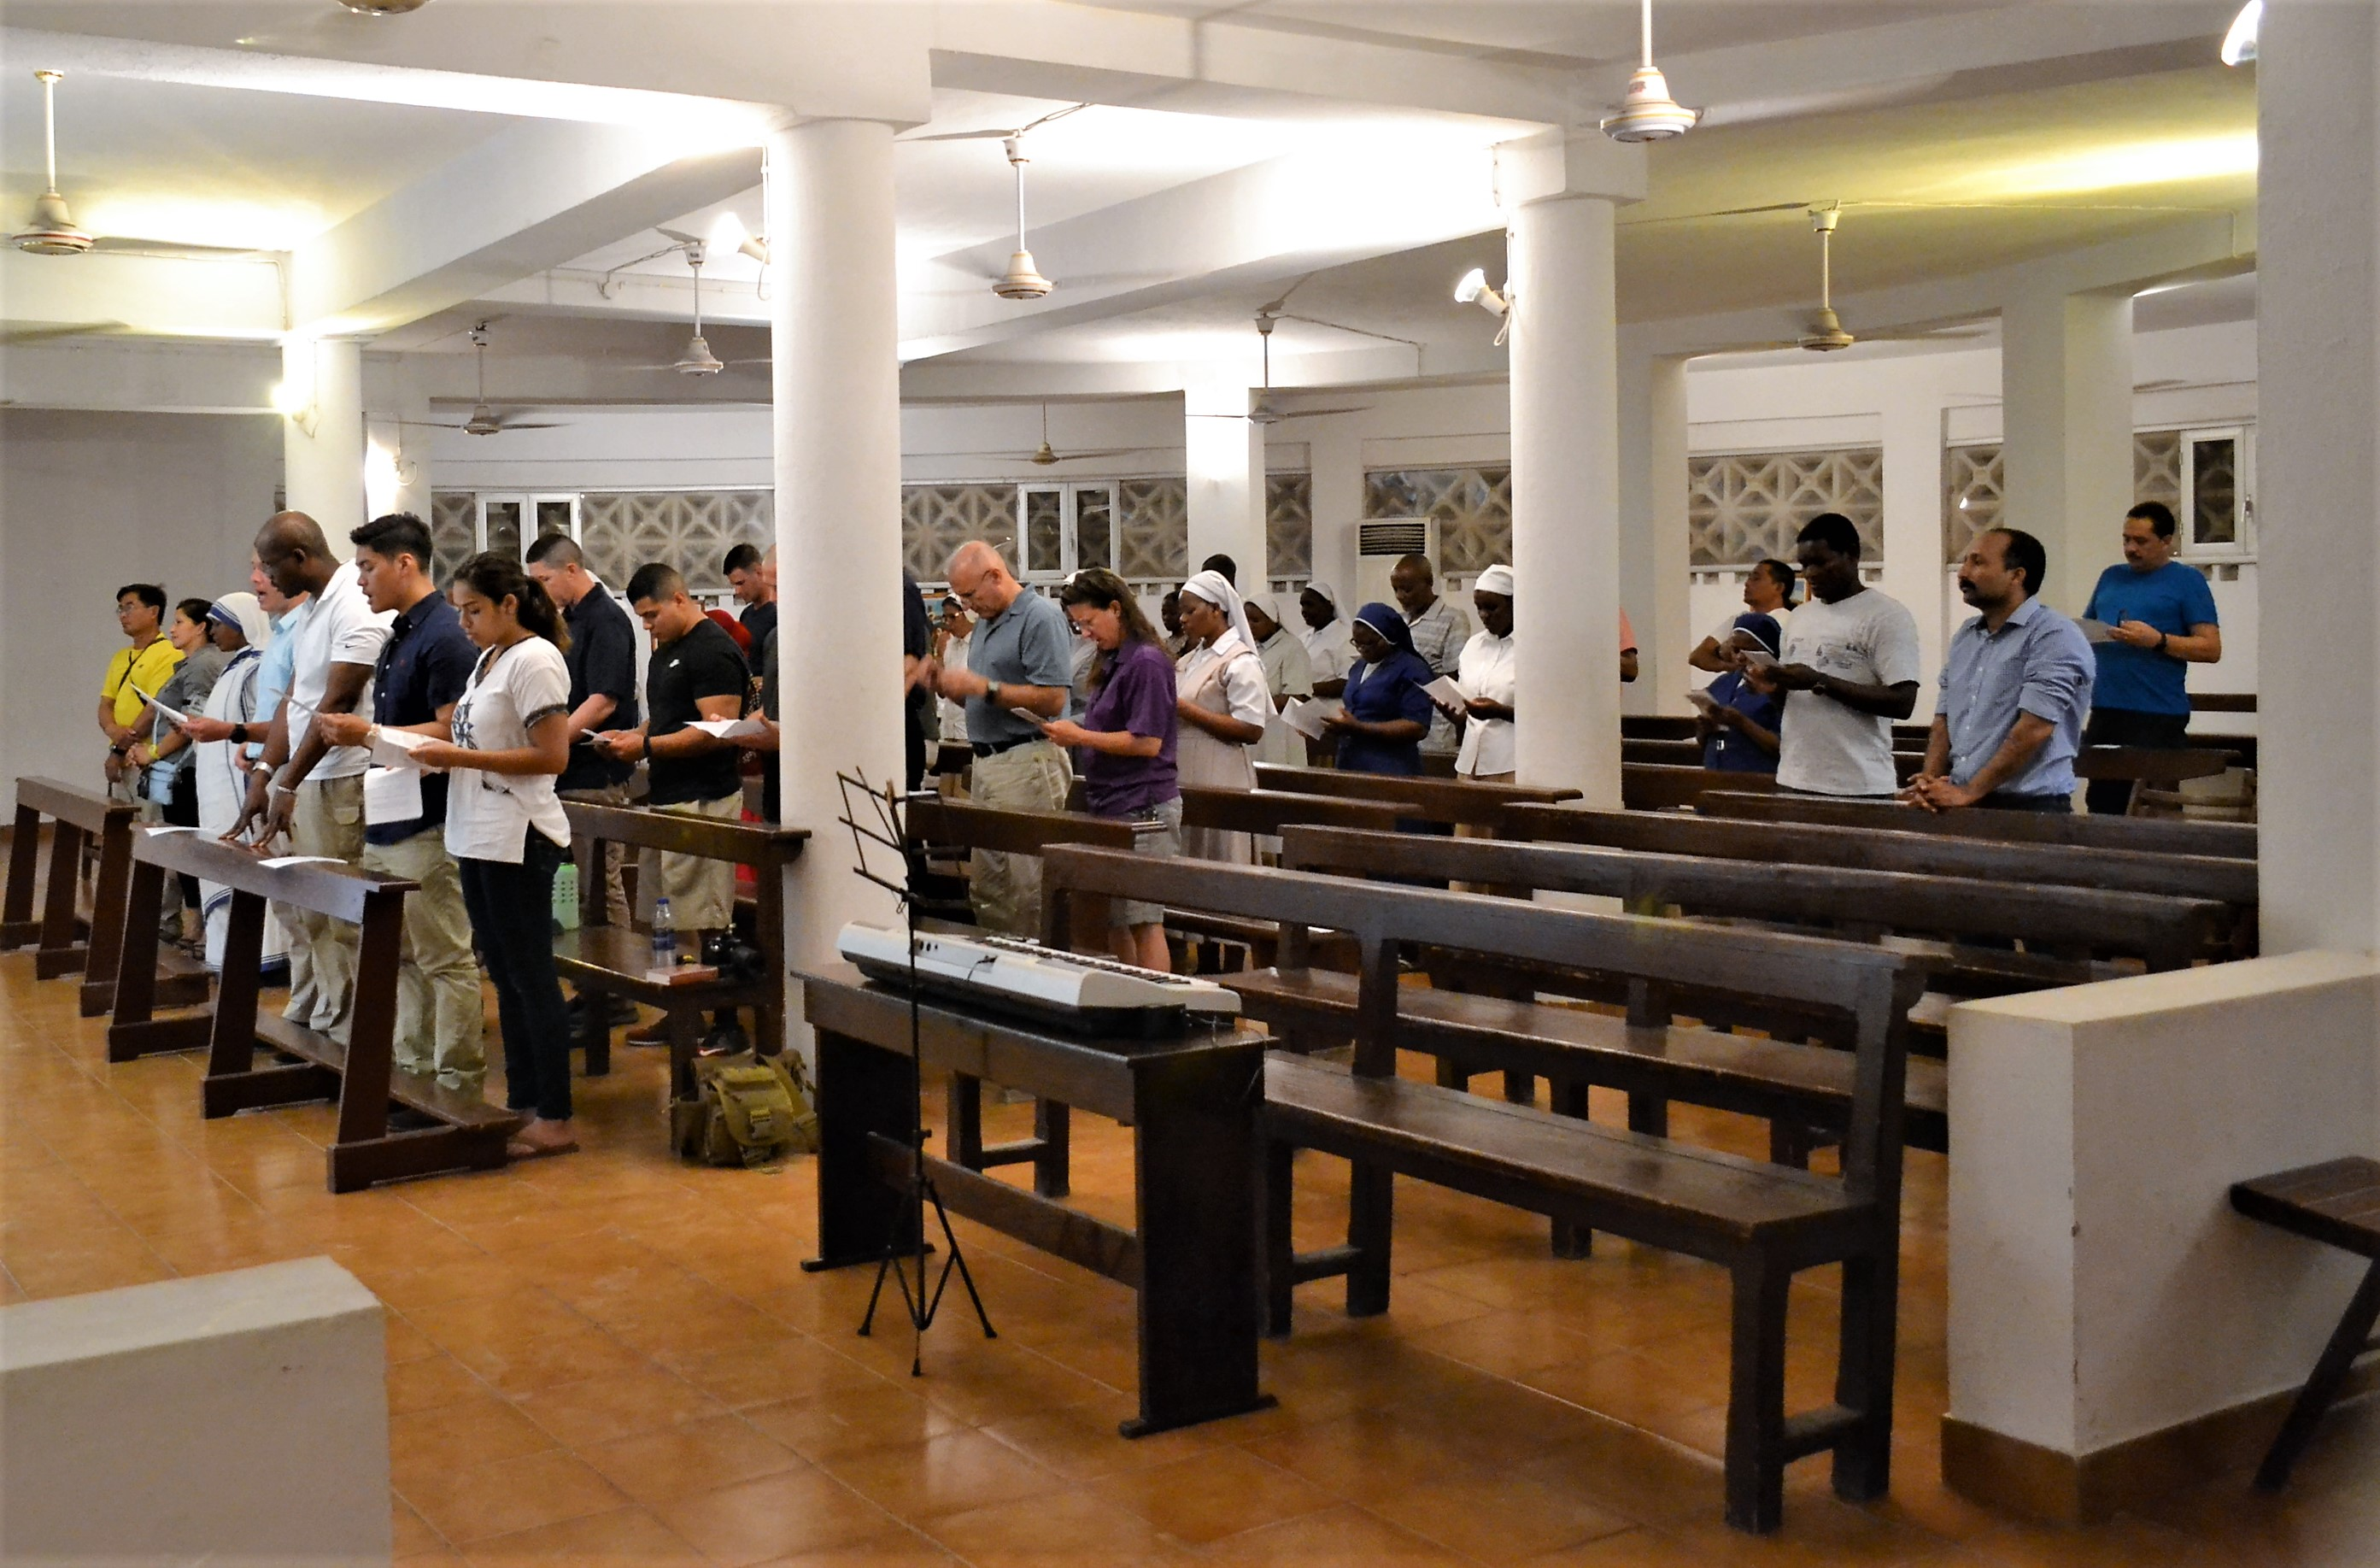 Camp Lemonnier-stationed Roman Catholics and their Djiboutian counterparts met iin faith, worshipping together inside the main Catholic church of Djibouti – Cathédrale Notre-Dame du Bon-Pasteur de Djibouti, known in English as Our Lady of the Good Shepherd Cathedral, June 15, 2017. Last month, the Combined Joint Task Force – Horn of Africa Religious Affairs Office began the mission of once again uniting the faithful in Djibouti's cathedral.(U.S. Air National Guard photo by Tech. Sgt. Andria Allmond)